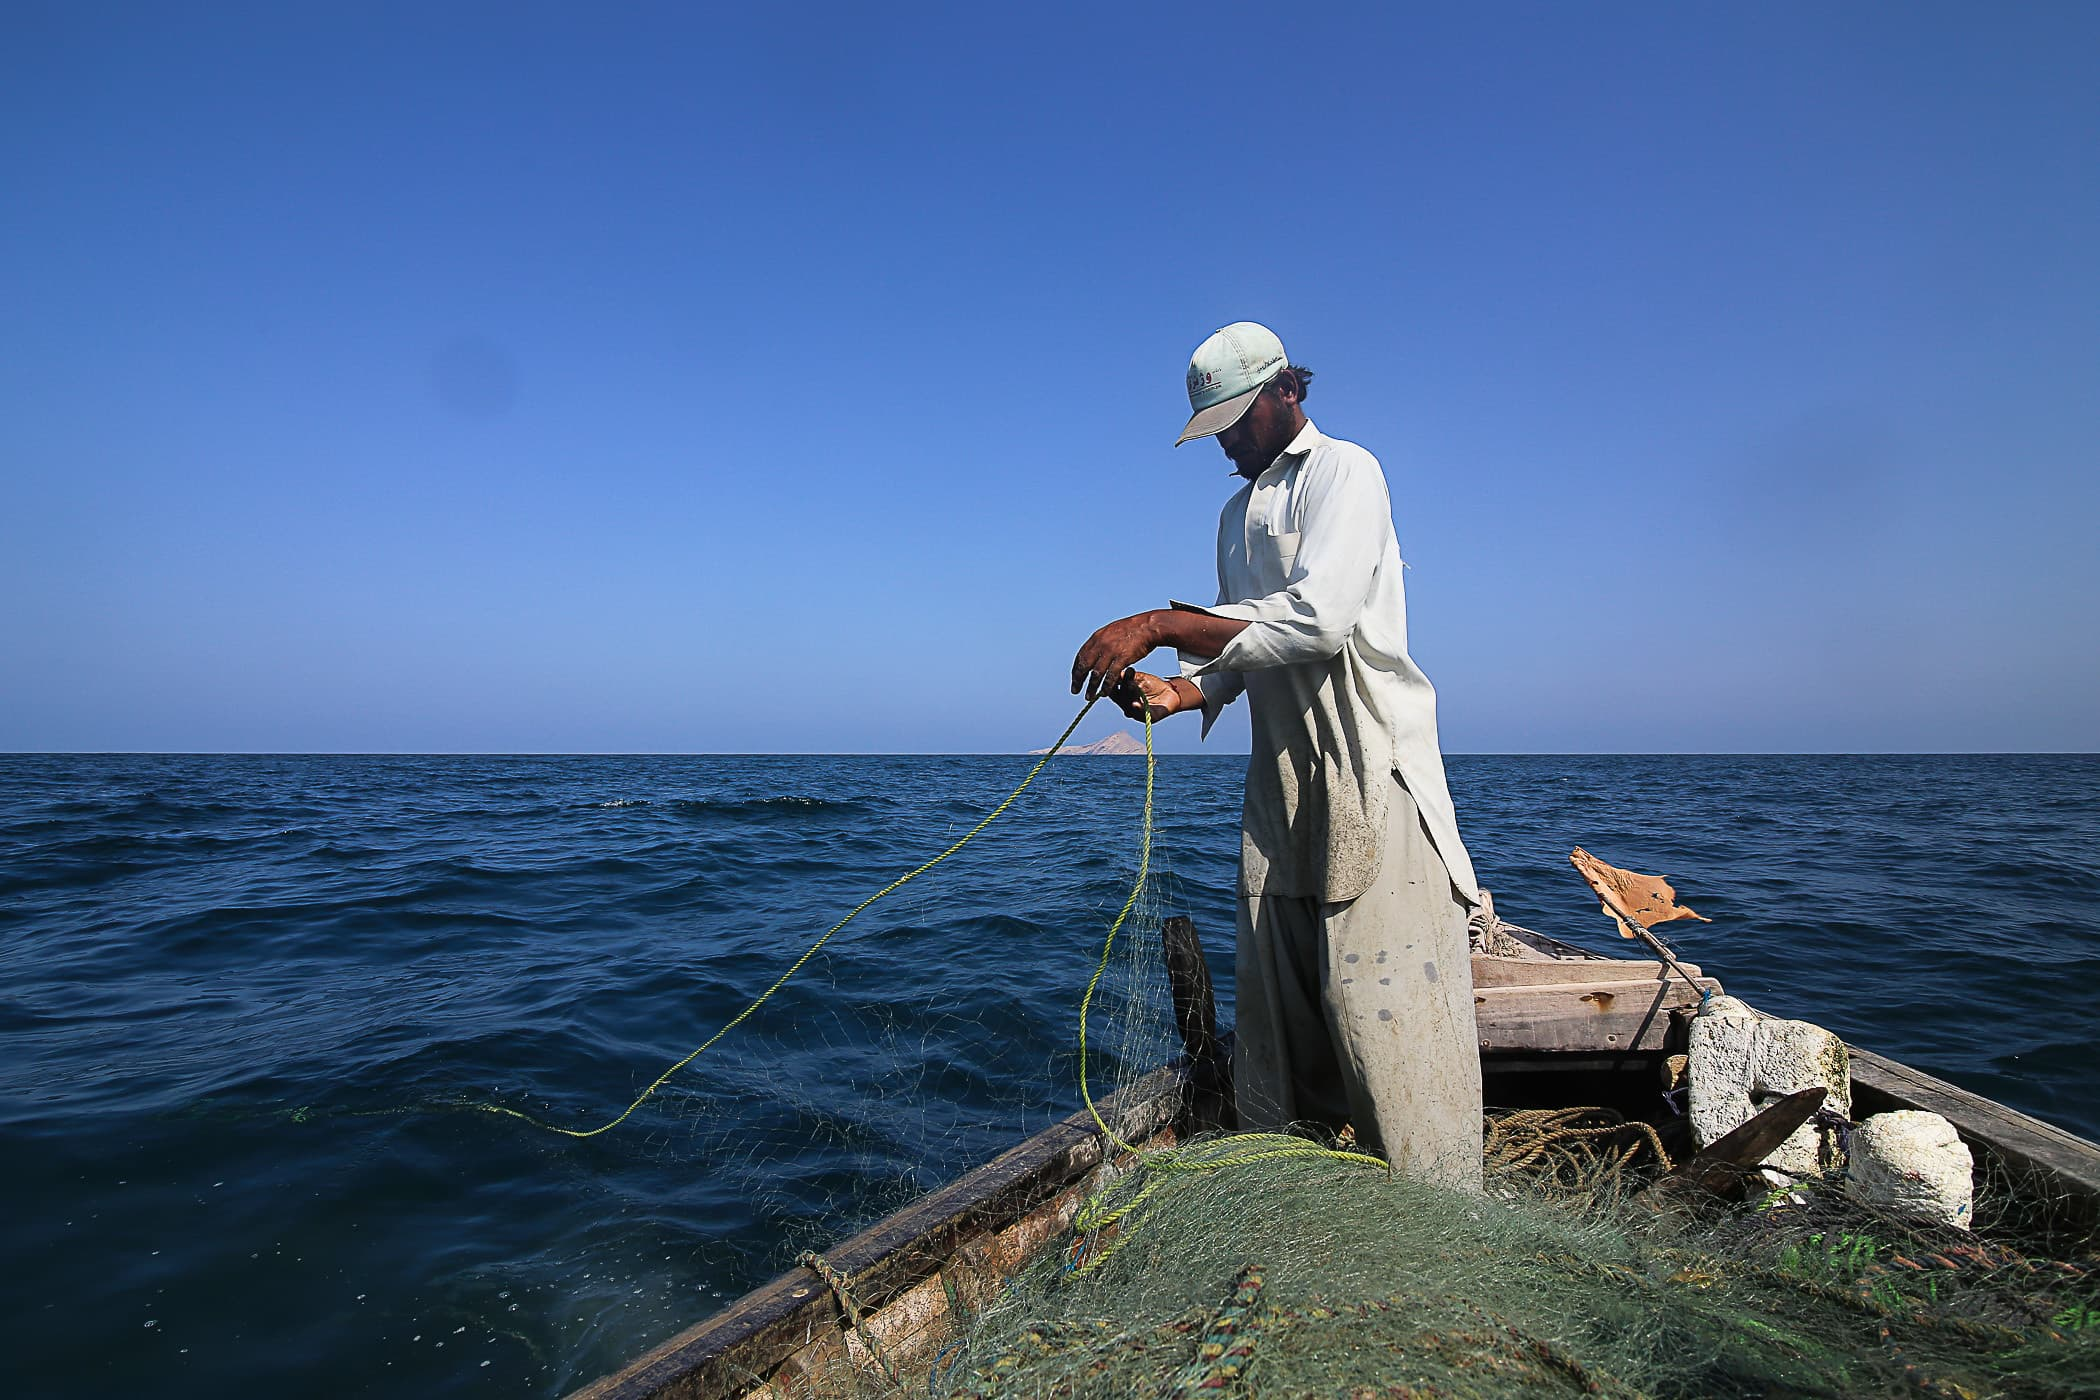 Qasim places the nets back into the sea.